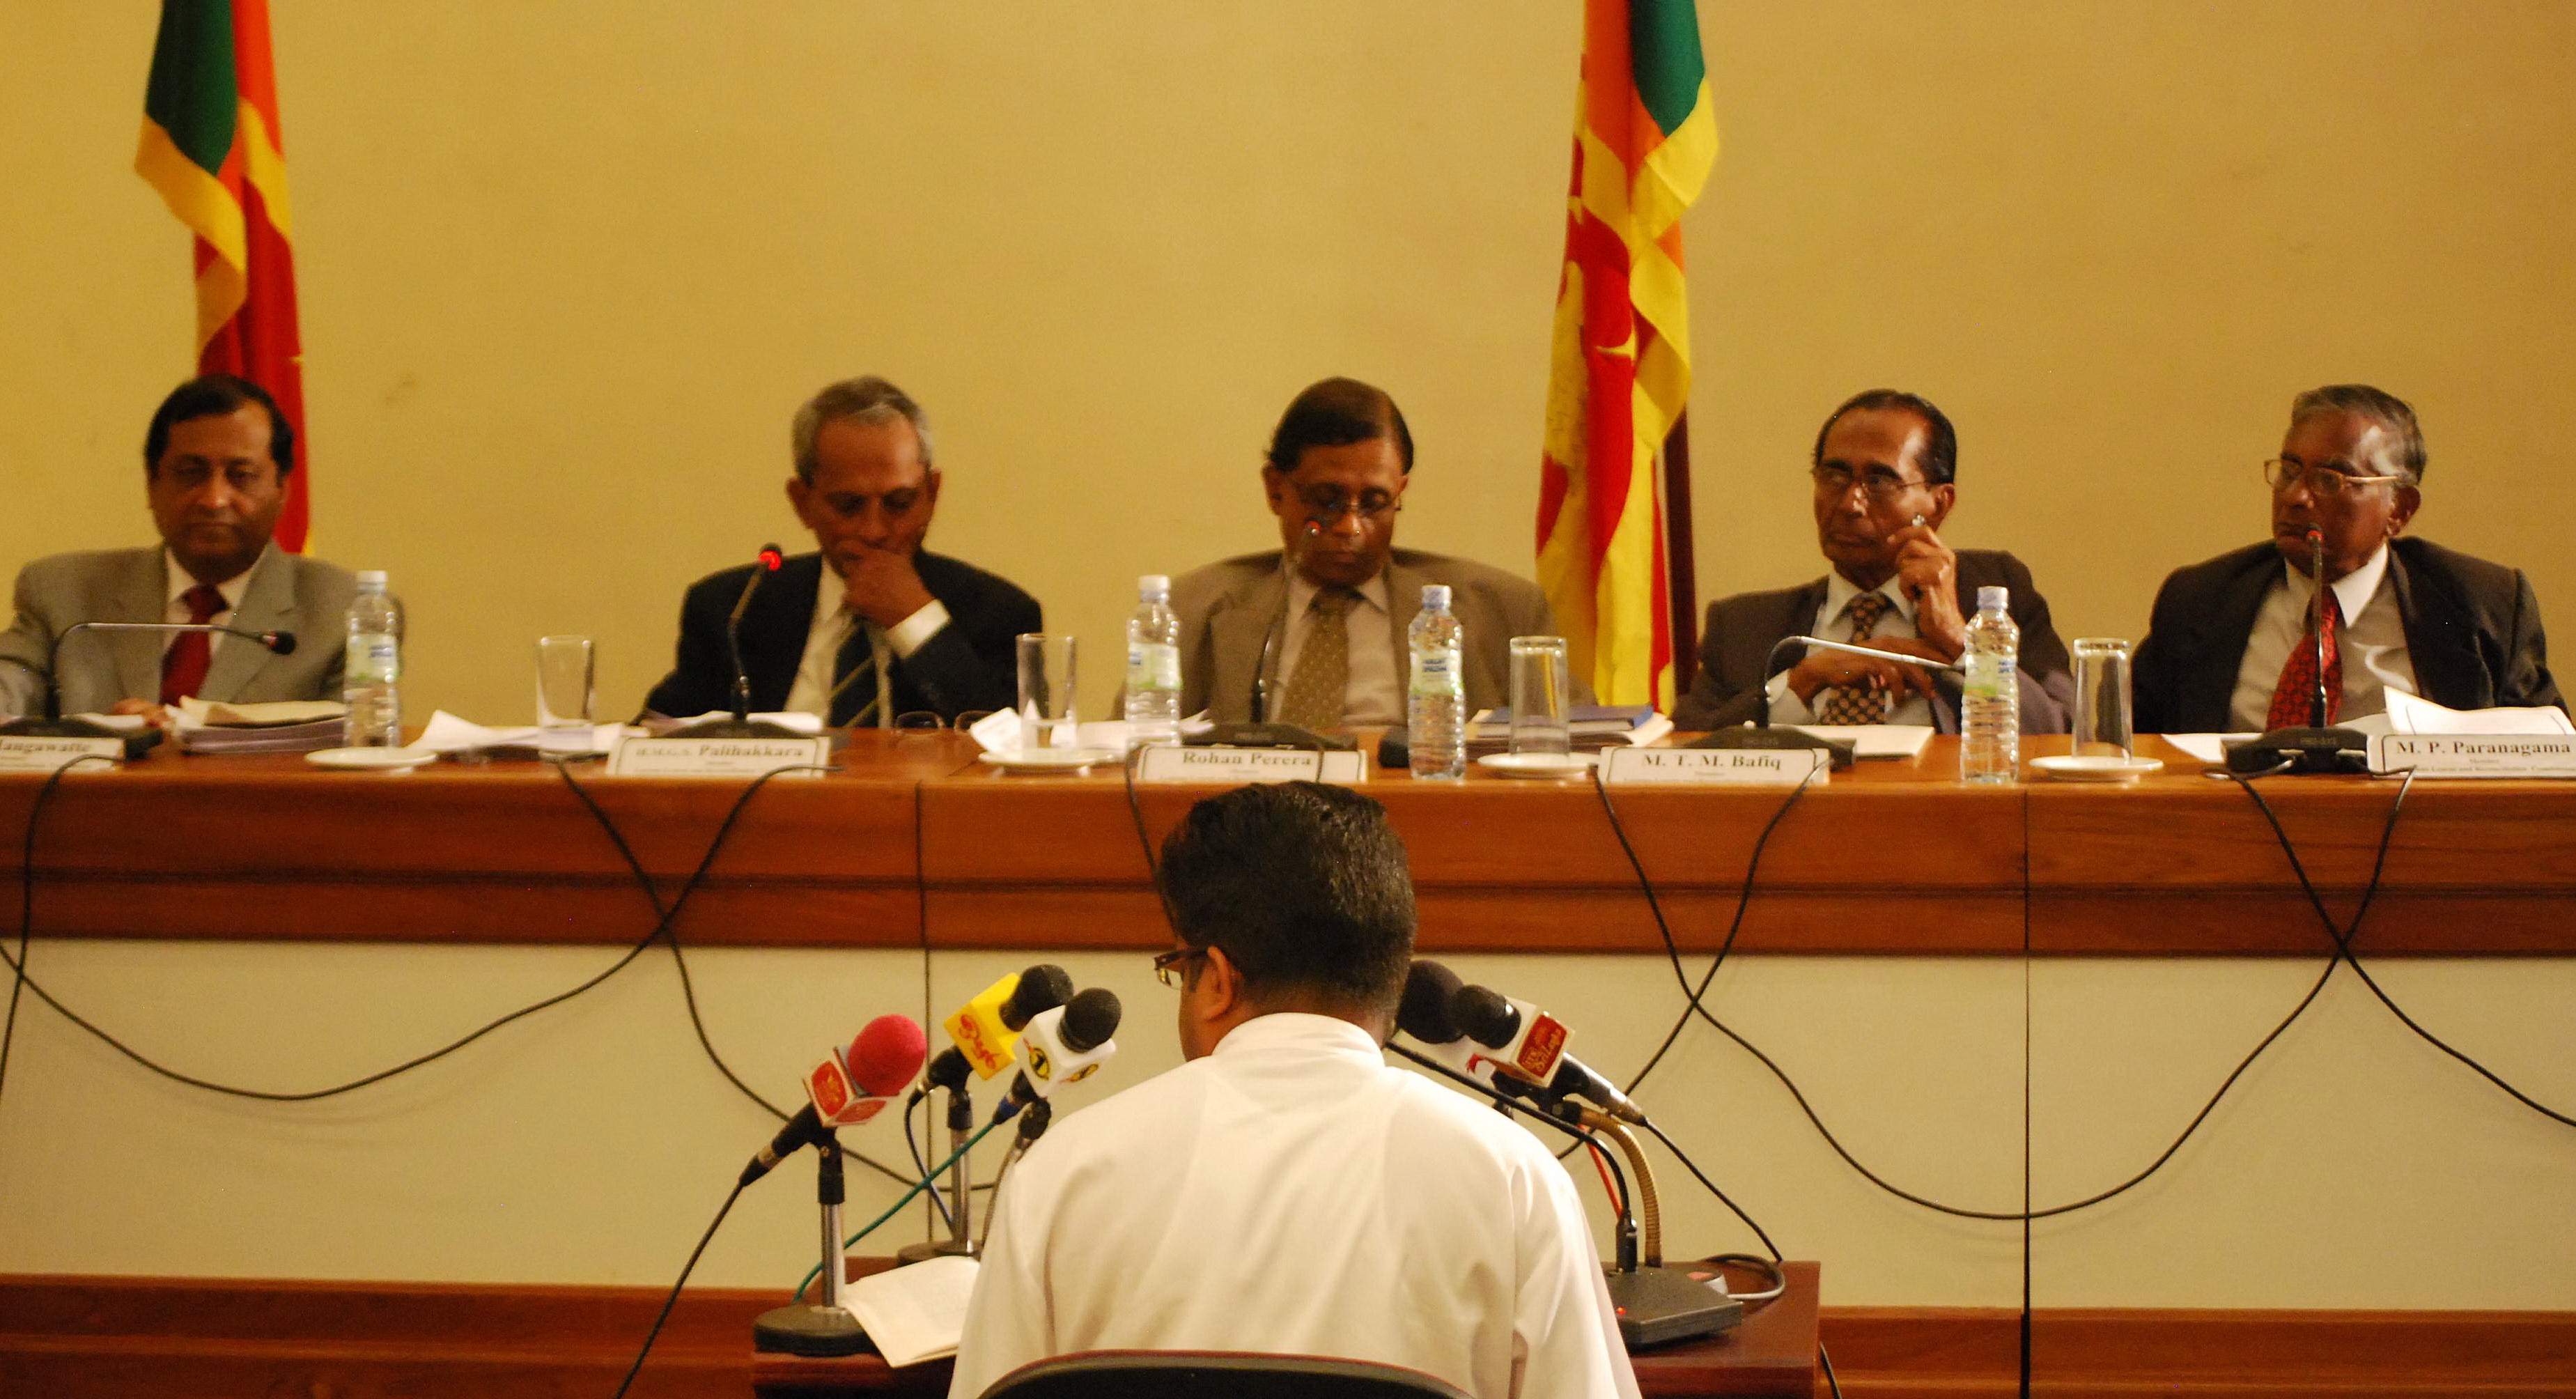 A witness giving evidence at the sittings of Sri Lanka's Lessons Learnt and Reconciliation Commission